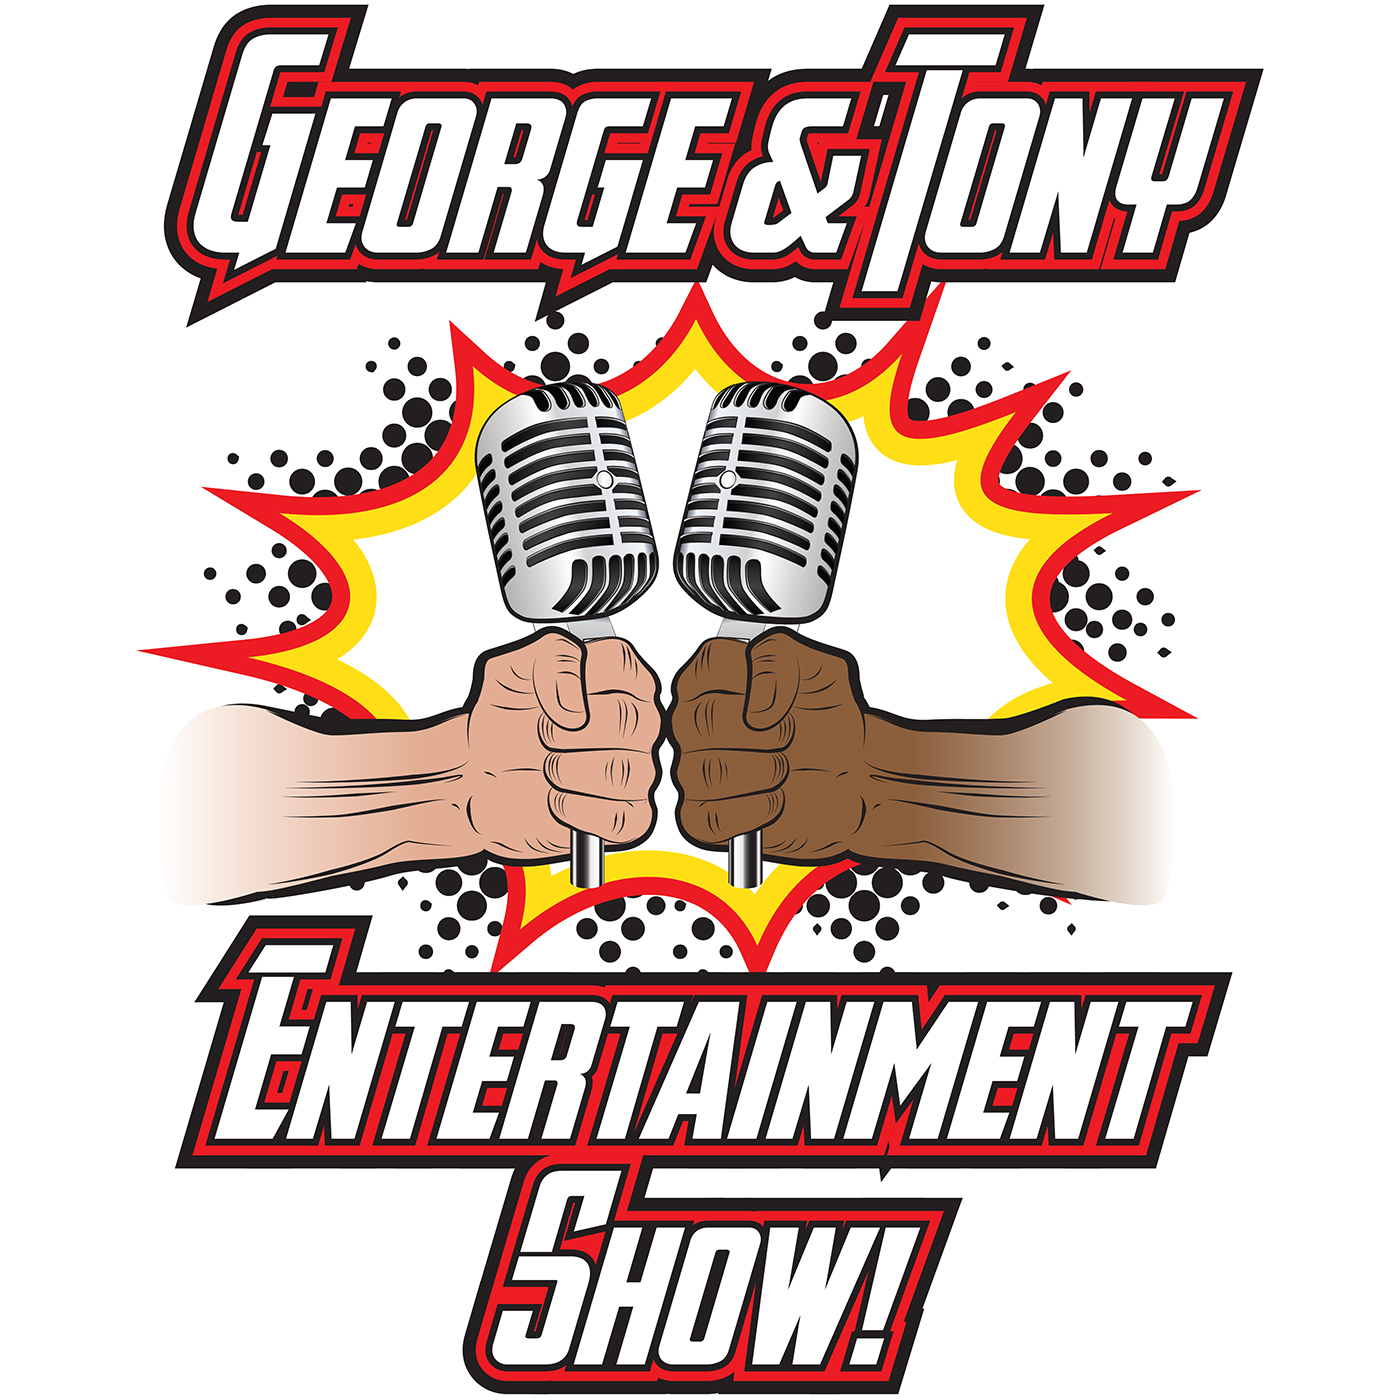 George and Tony Entertainment Show #105